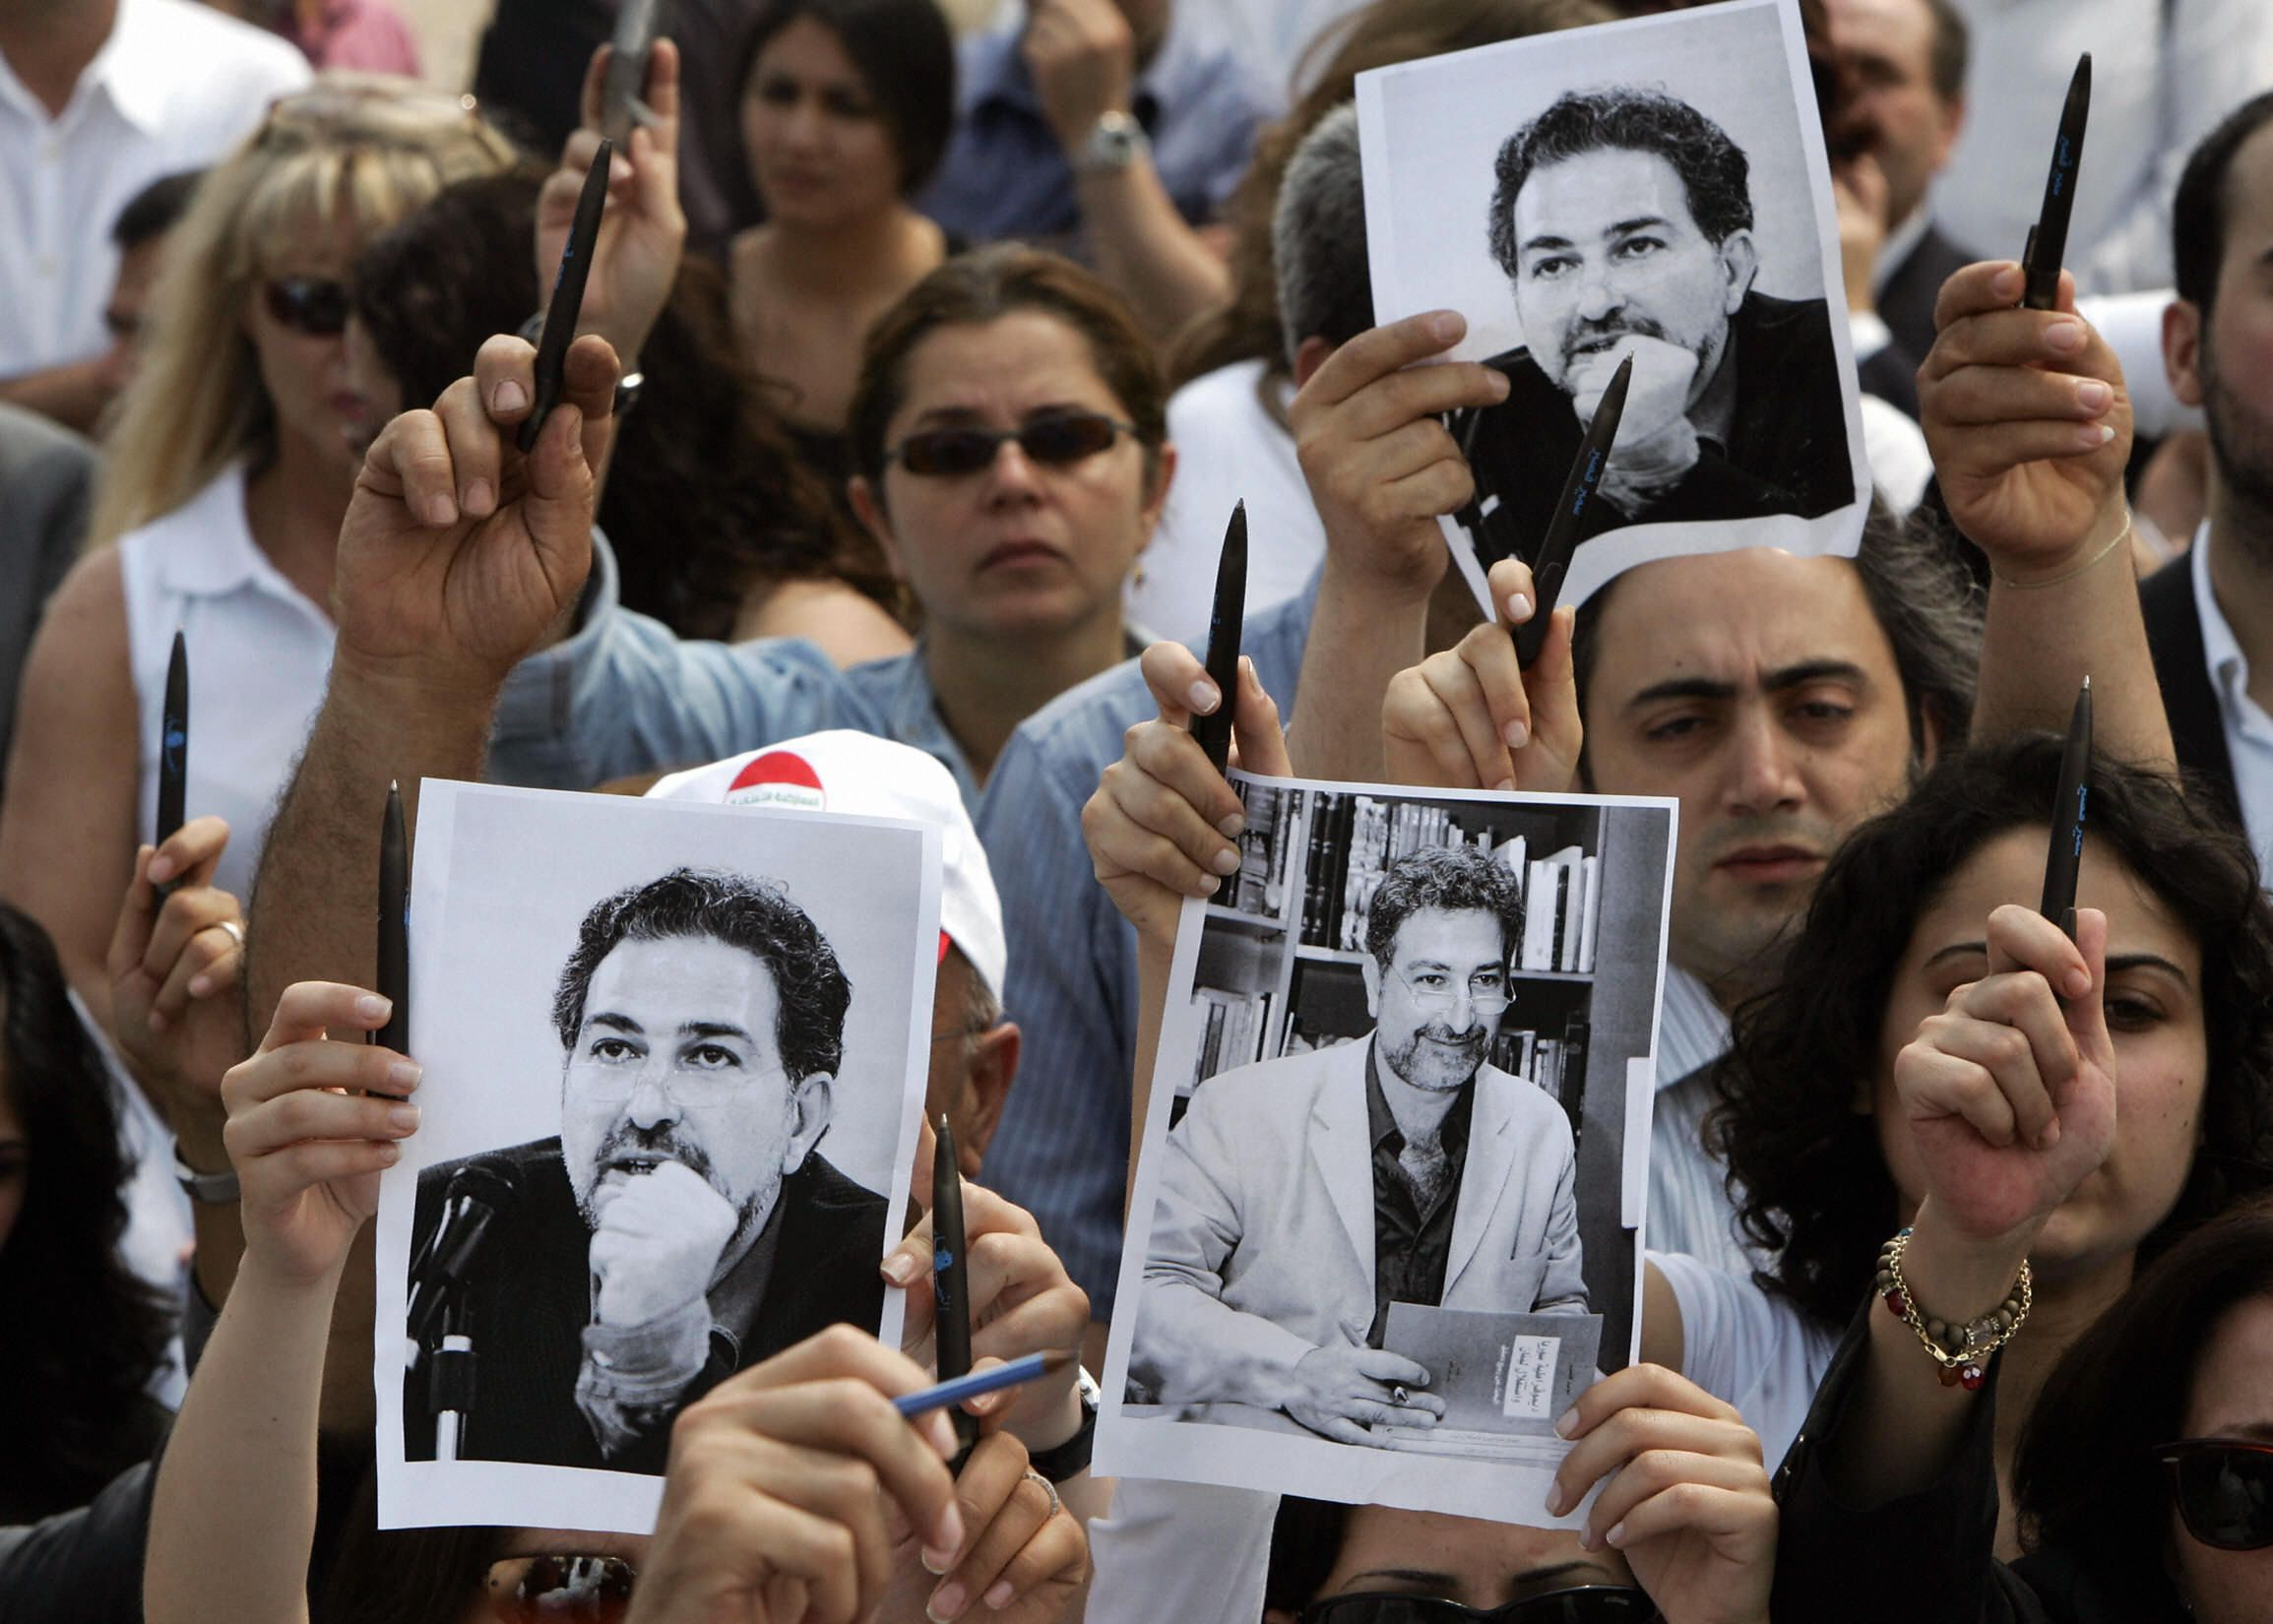 BEIRUT, LEBANON:  Lebanese journalists raise pens and black and white pictures of their assassinated colleague Samir Kassir during a demonstration at Martyrs' square in central Beirut 03 June 2005, to protest his killing in a car bomb explosion the day before. Hundreds of grieving journalists, dressed in black and white, stood in silence around the Statue of the Martyrs in response to a call for the protest by the An Nahar newspaper, where Kassir, 45, was a prominent editorial writer.  AFP PHOTO/RAMZI HAIDAR  (Photo credit should read RAMZI HAIDAR/AFP/Getty Images)